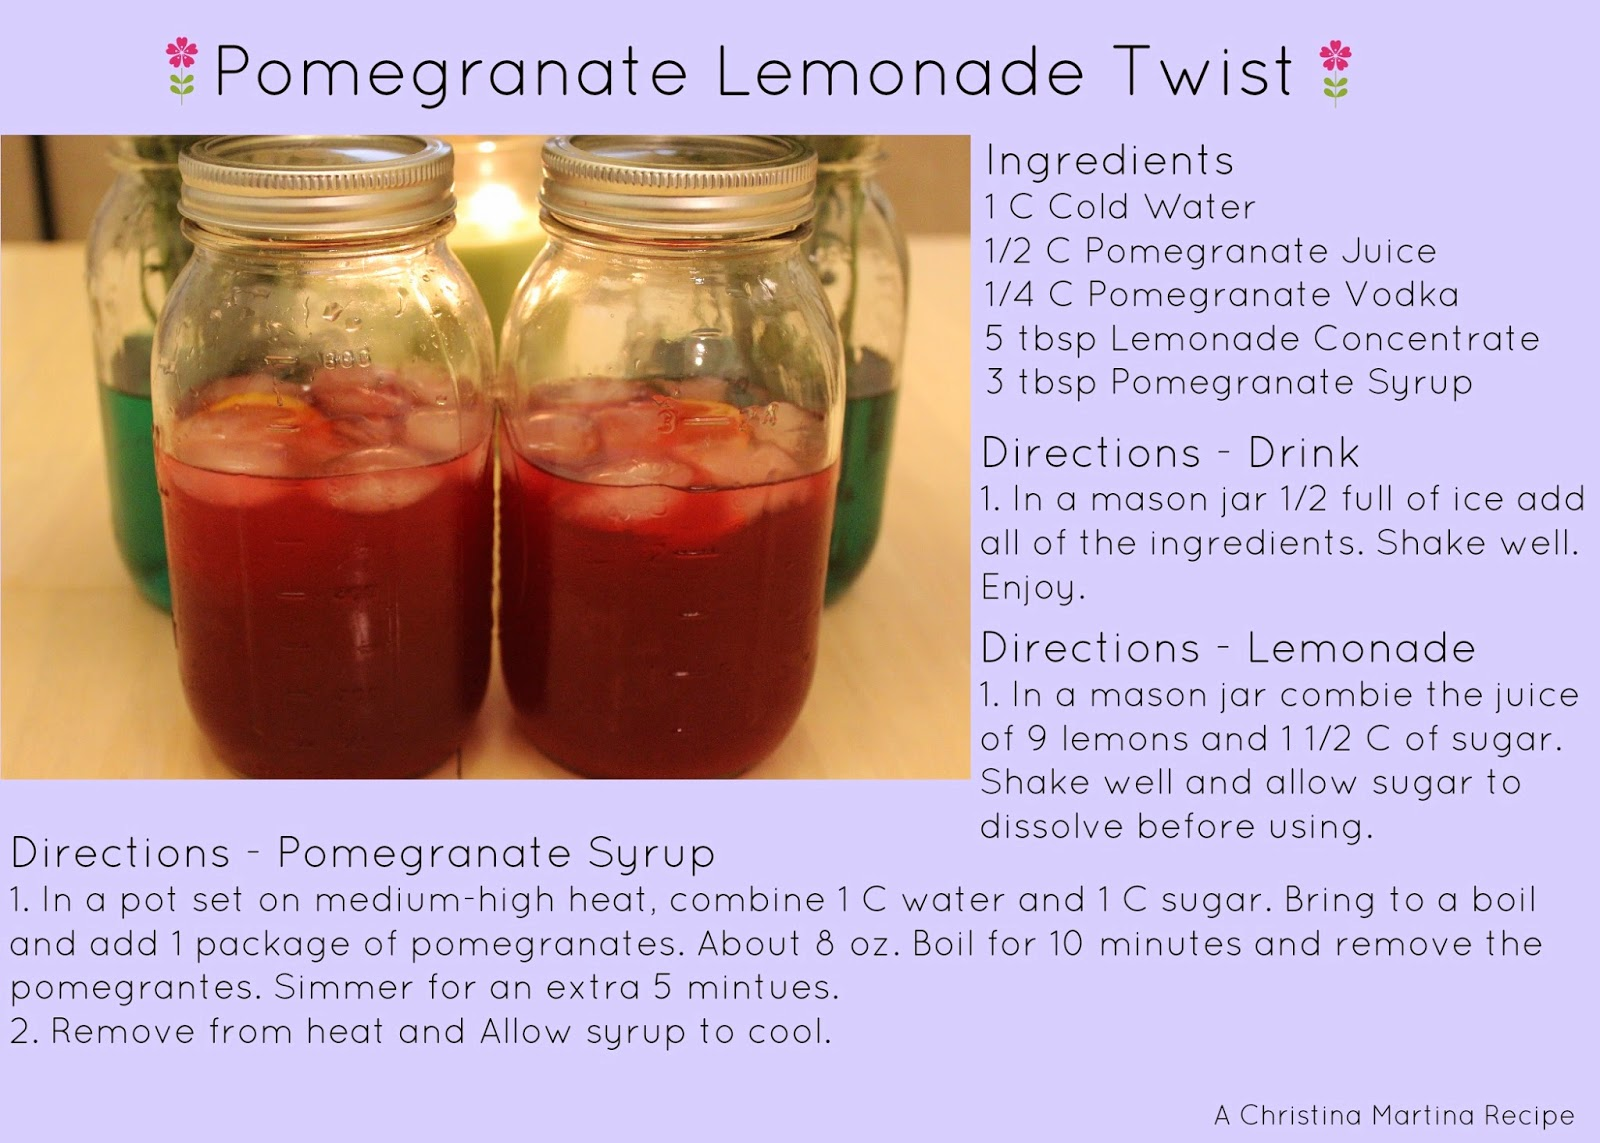 thirsty thursday, pomegranate lemonade recipe, lemonade recipe, recipe, alcoholic drink, drink recipe, mixers, summer drink, summer lemonade